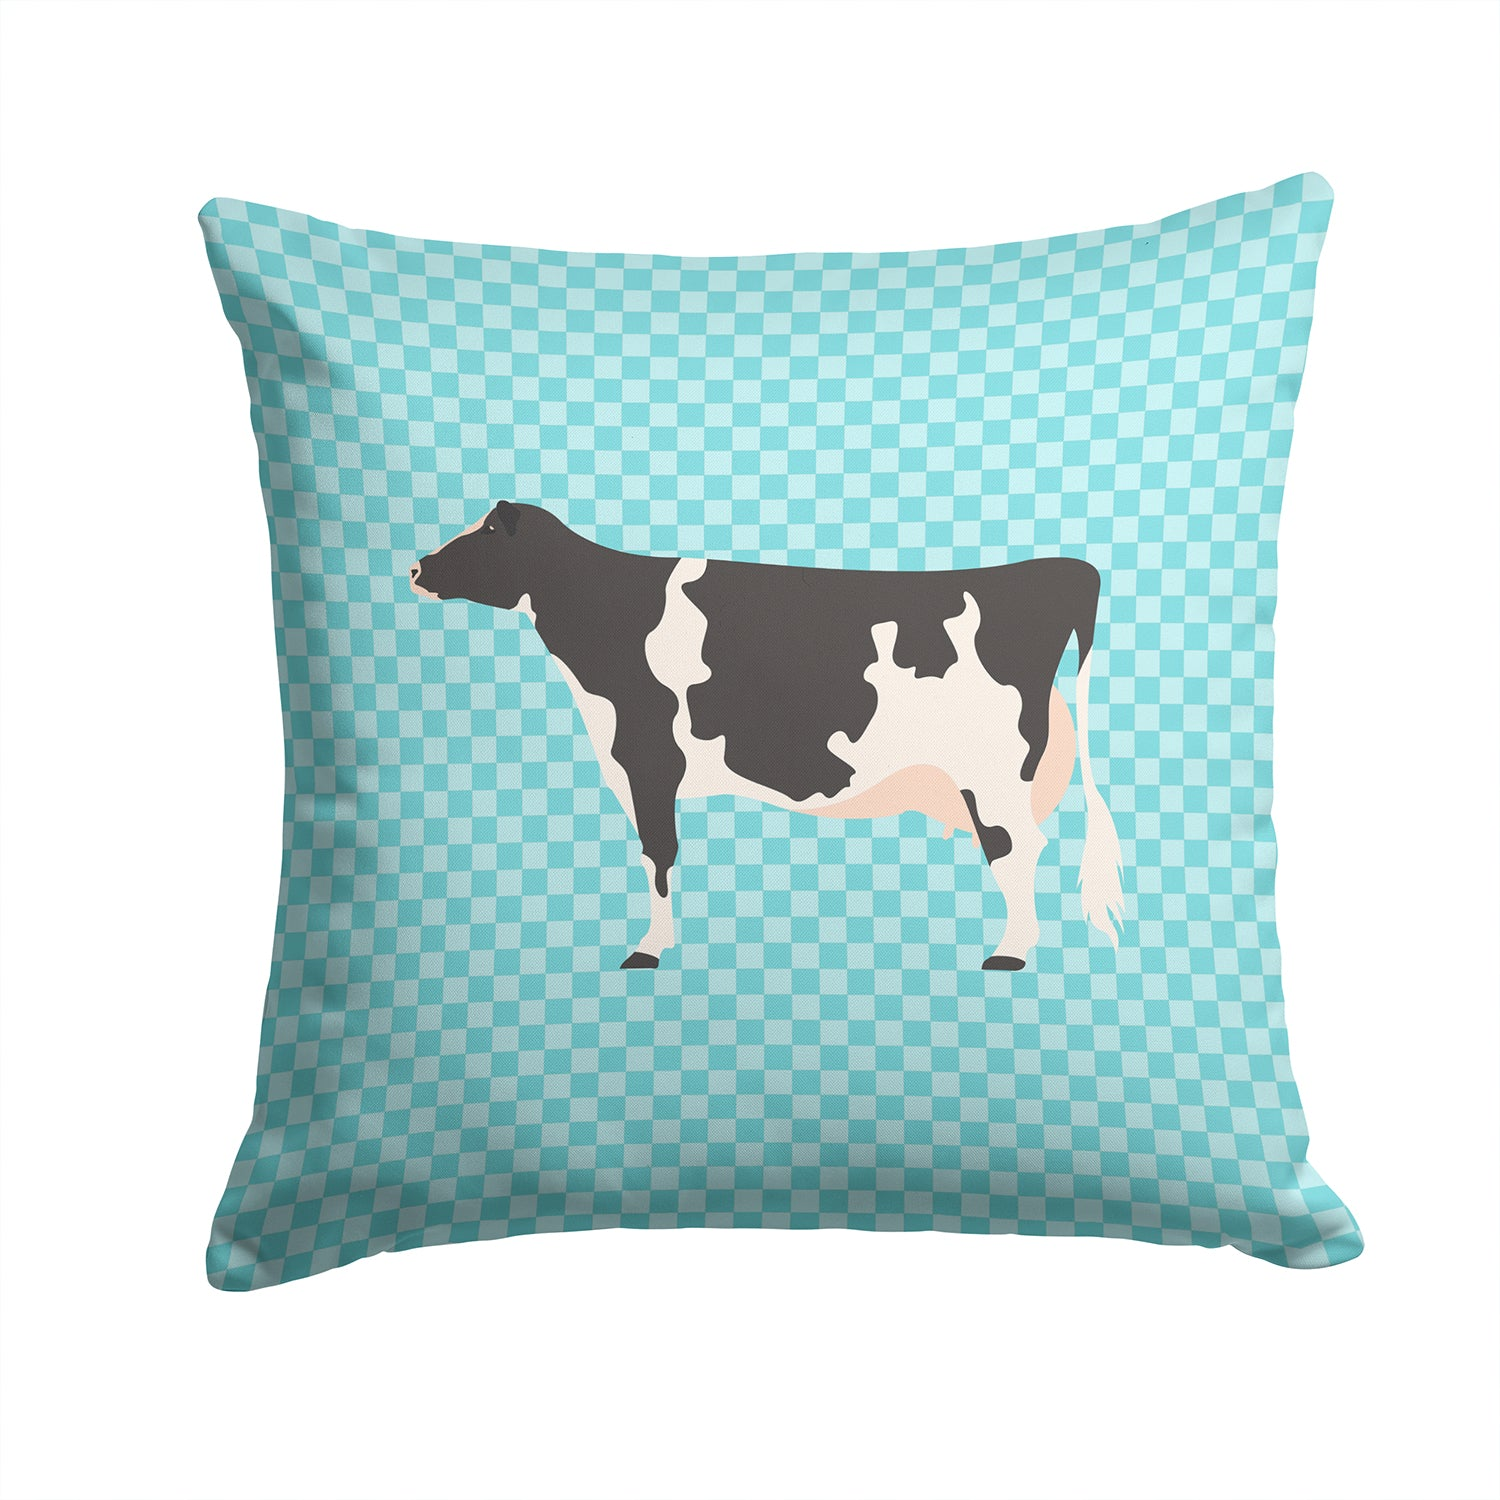 Holstein Cow Blue Check Fabric Decorative Pillow BB7996PW1414 by Caroline's Treasures